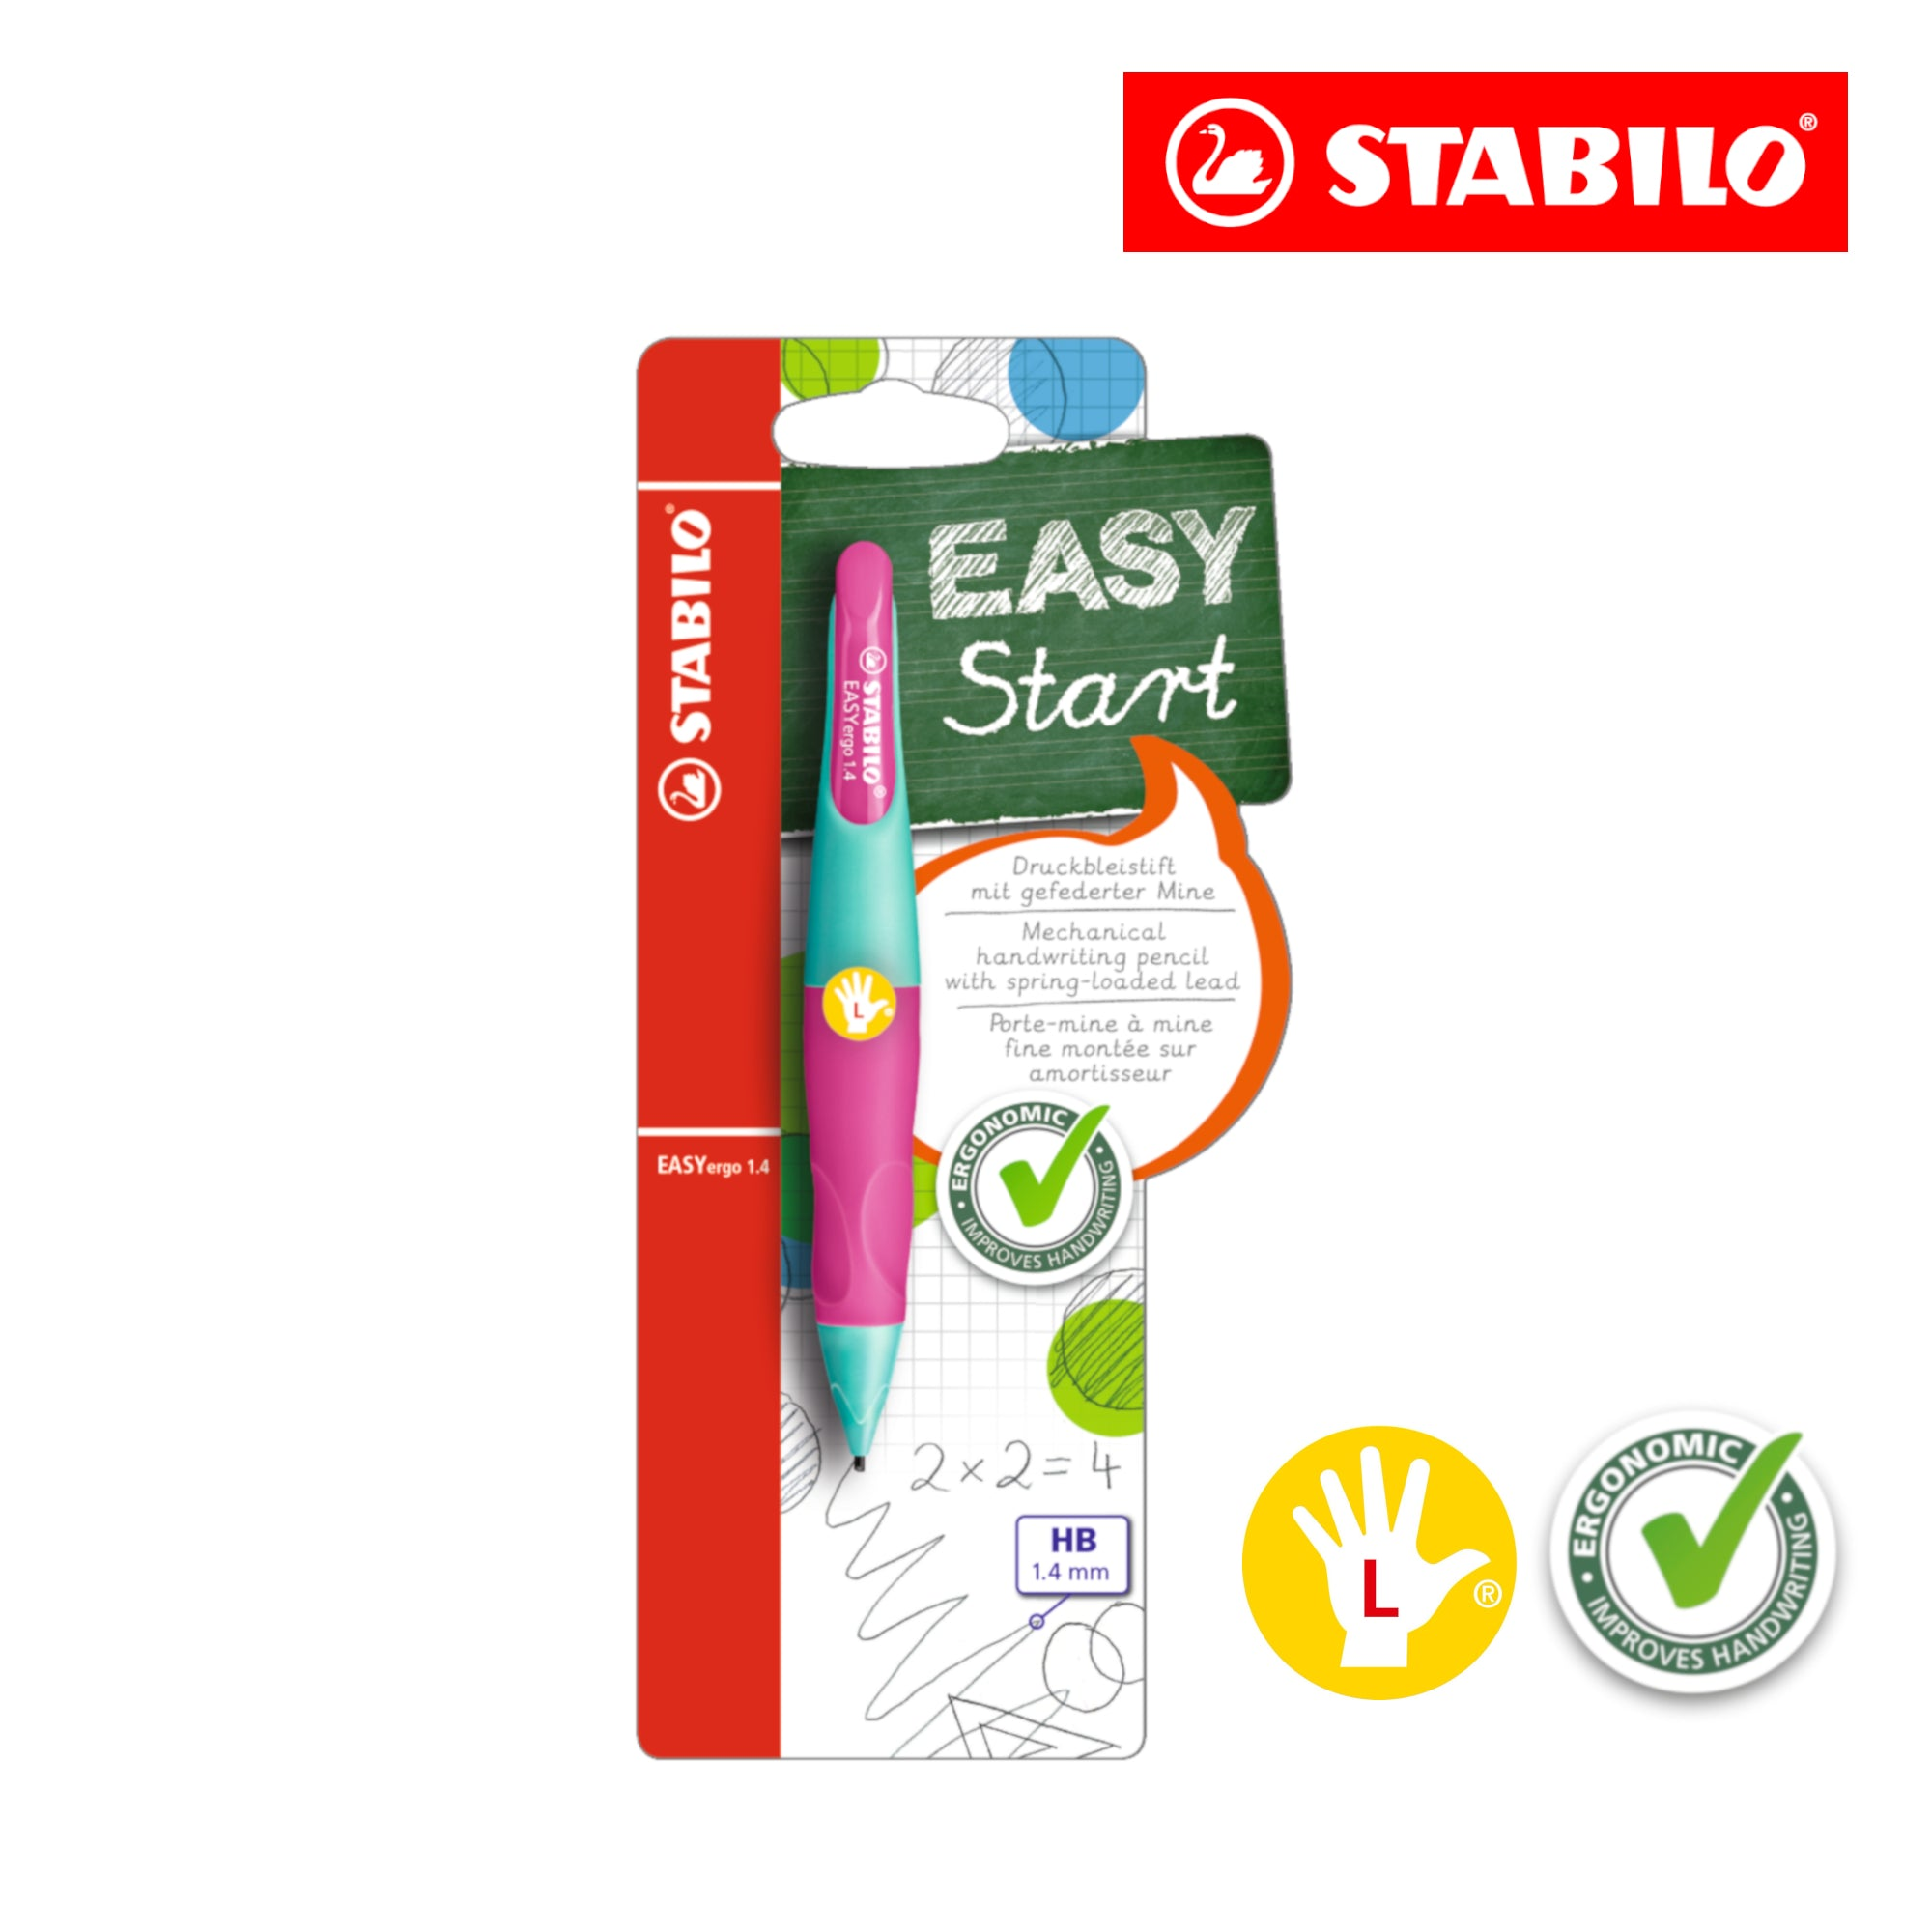 STABILO EASYergo 1.4mm Ergonomic Mechanical Pencil (Left-Hander)